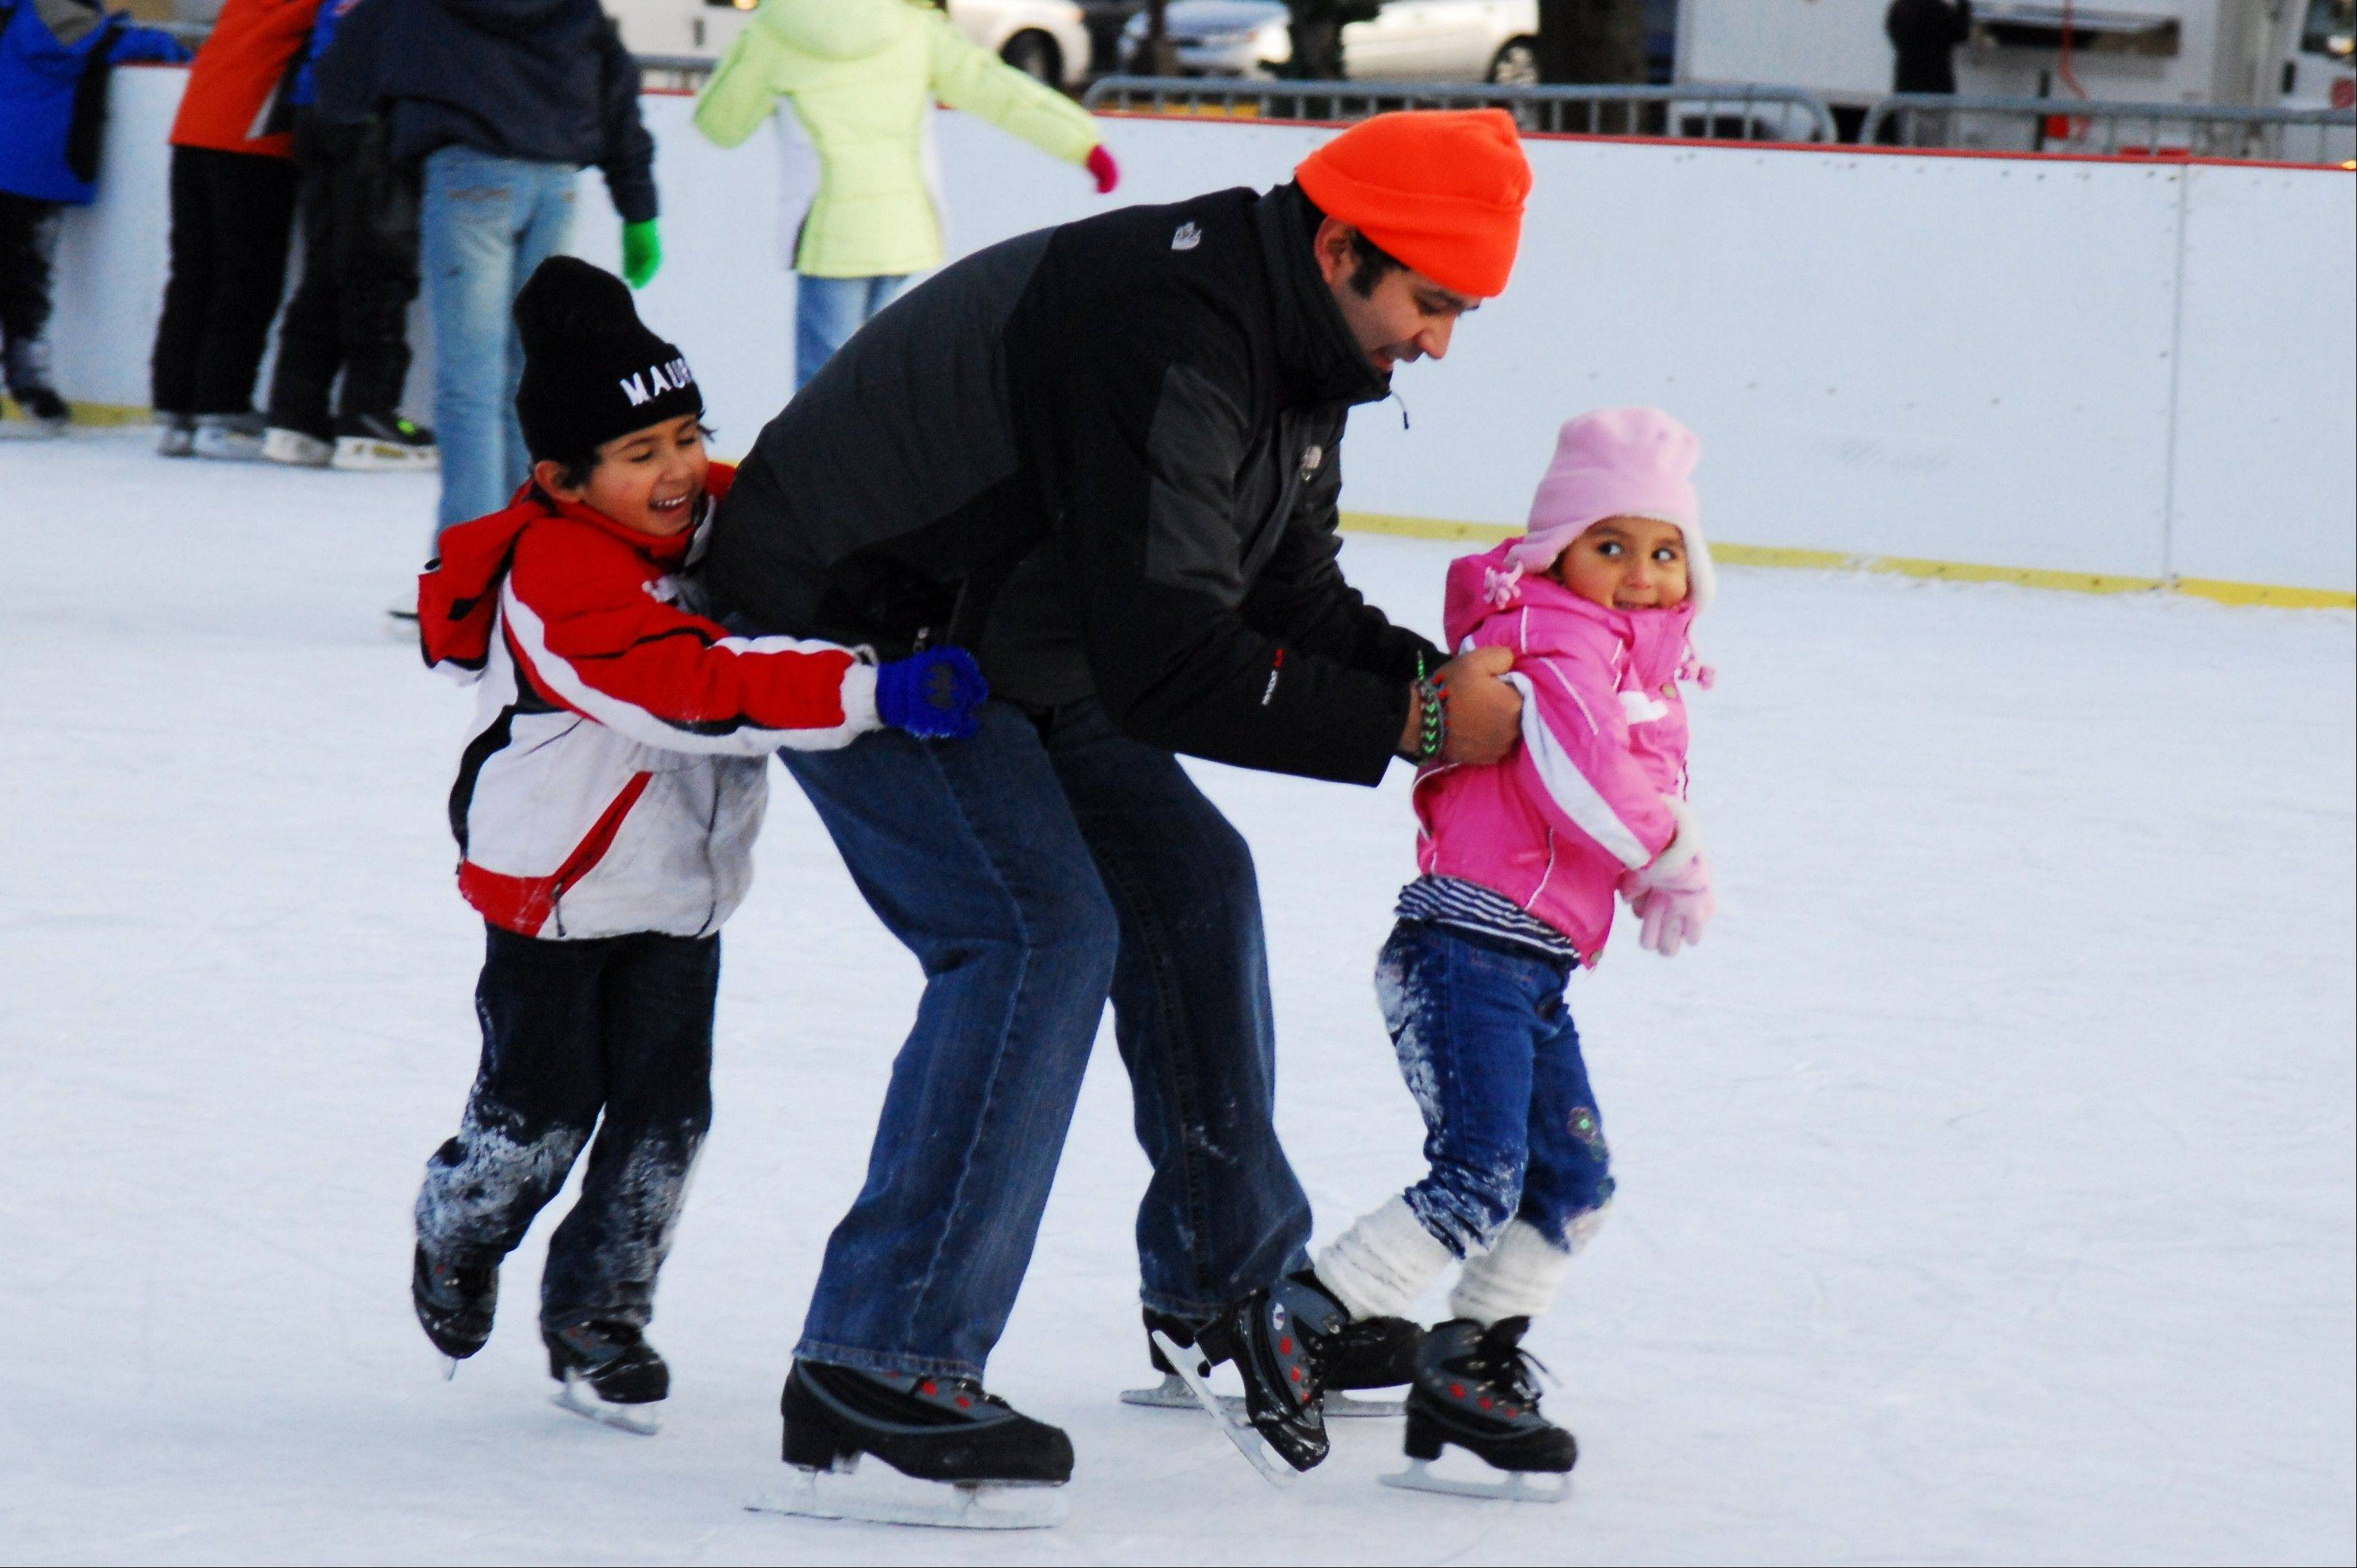 Skaters can take to the ice at Elgin's Civic Center Plaza.